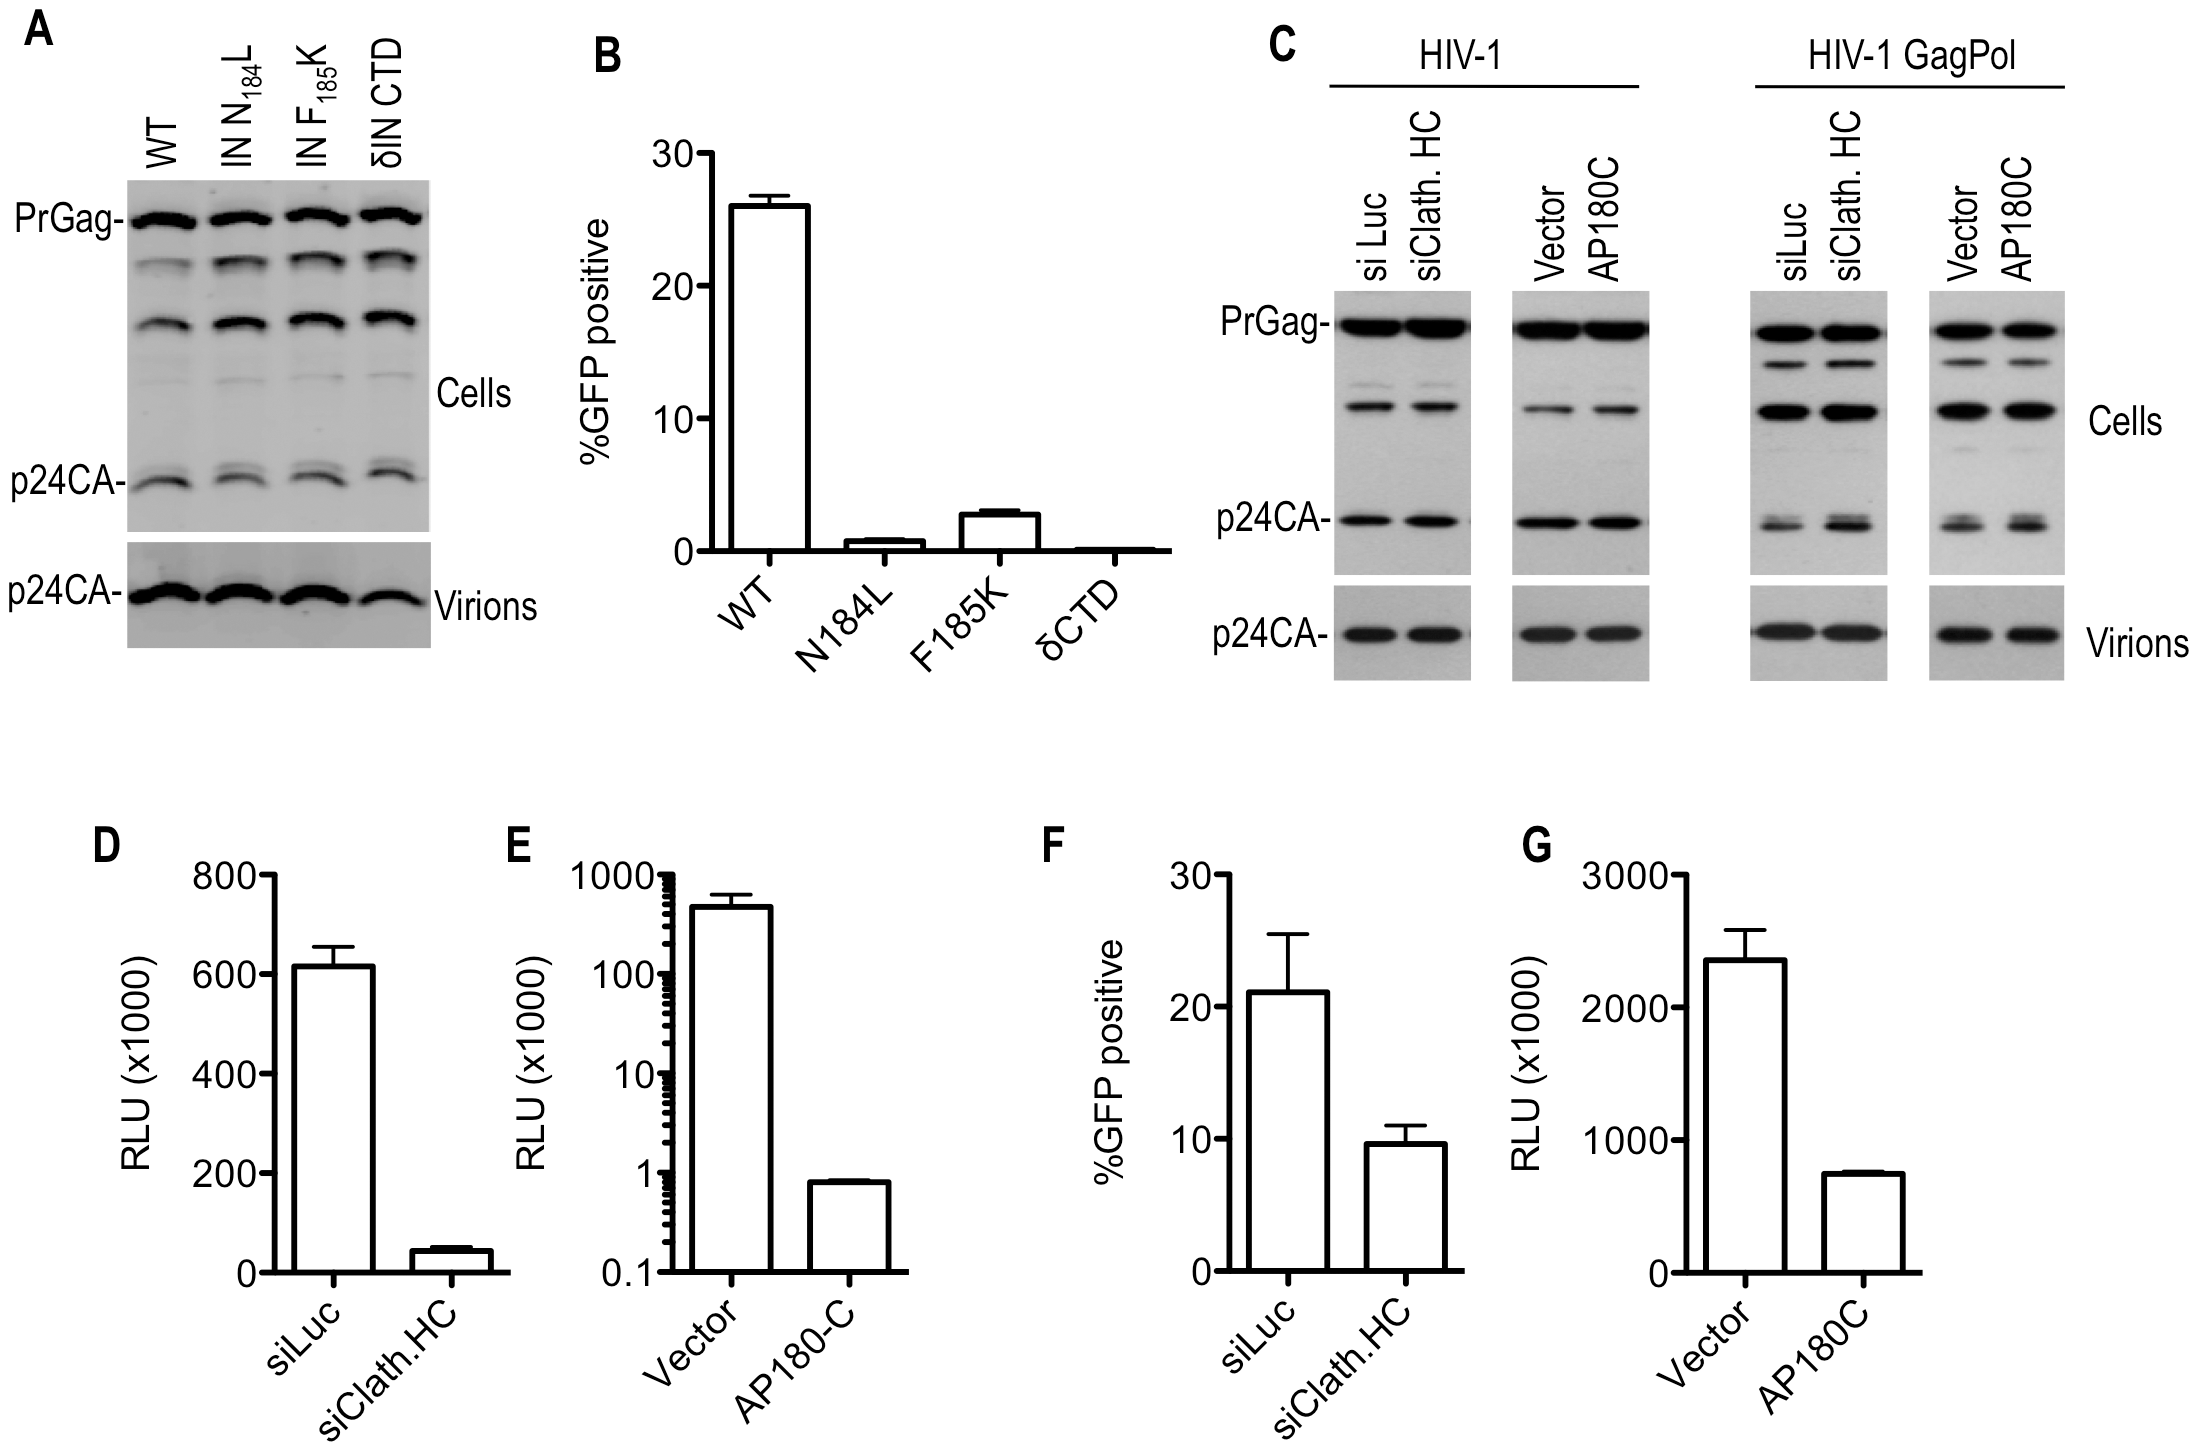 Effect of Pol mutations and clathrin on HIV-1 infectivity.